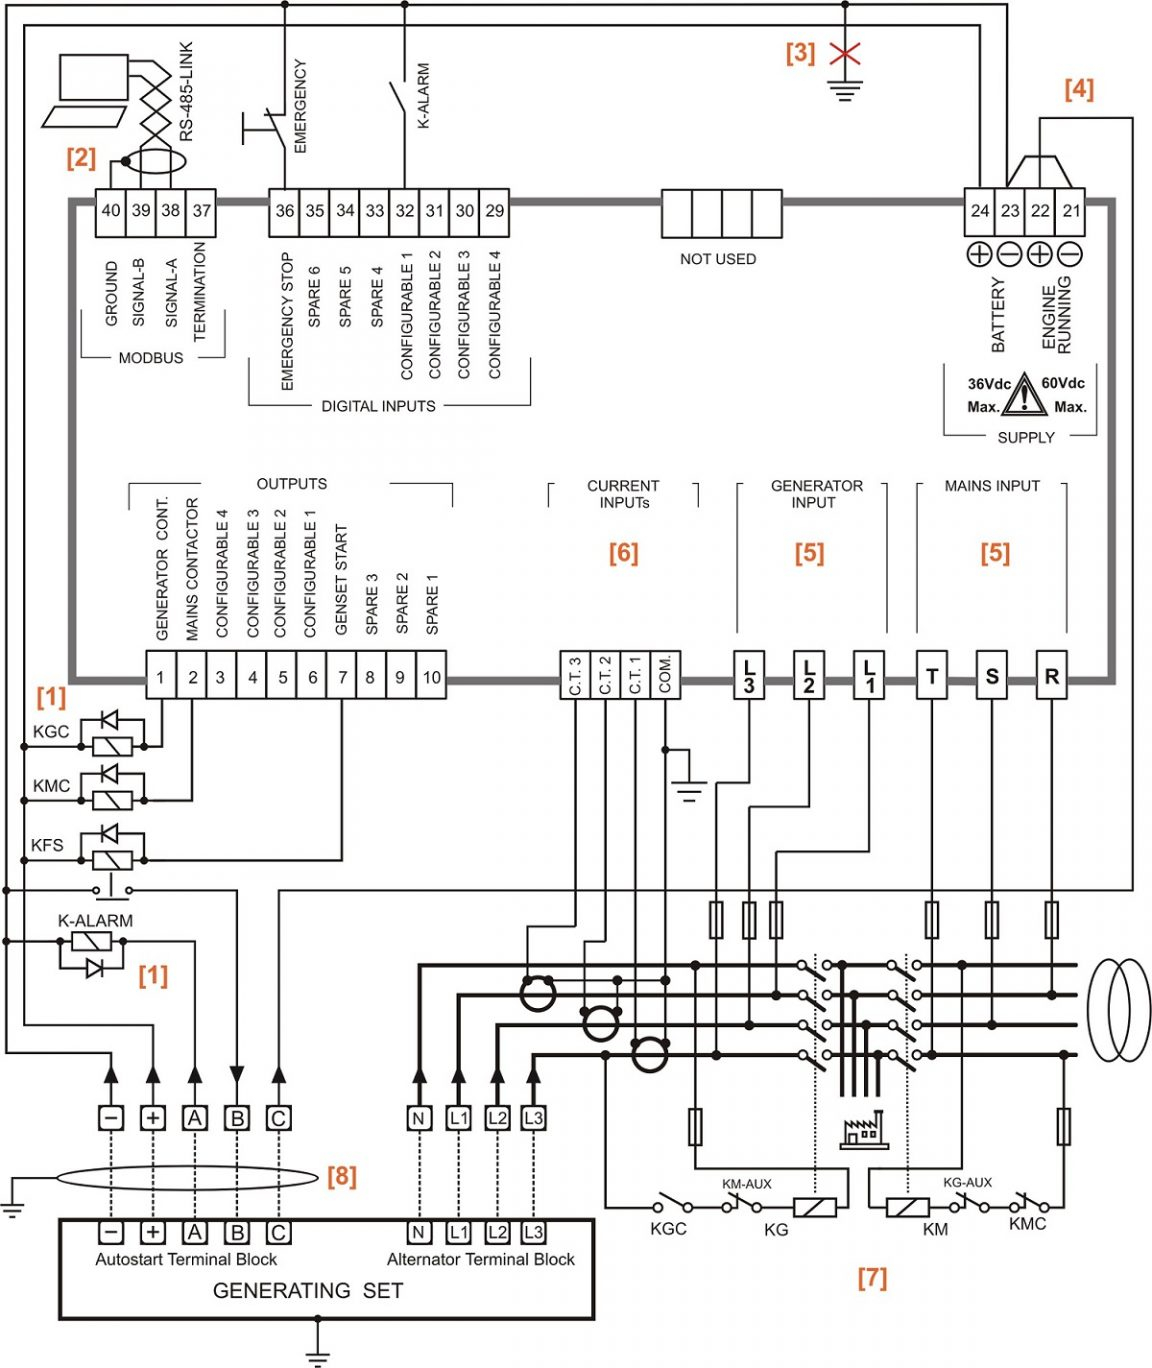 asco 7000 series automatic transfer switch wiring diagram Collection-Asco 7000 Series Automatic Transfer Switch Wiring Diagram Fresh Diagramuto Transfer Switchts Workingnd Control Panel Wiring 2-s